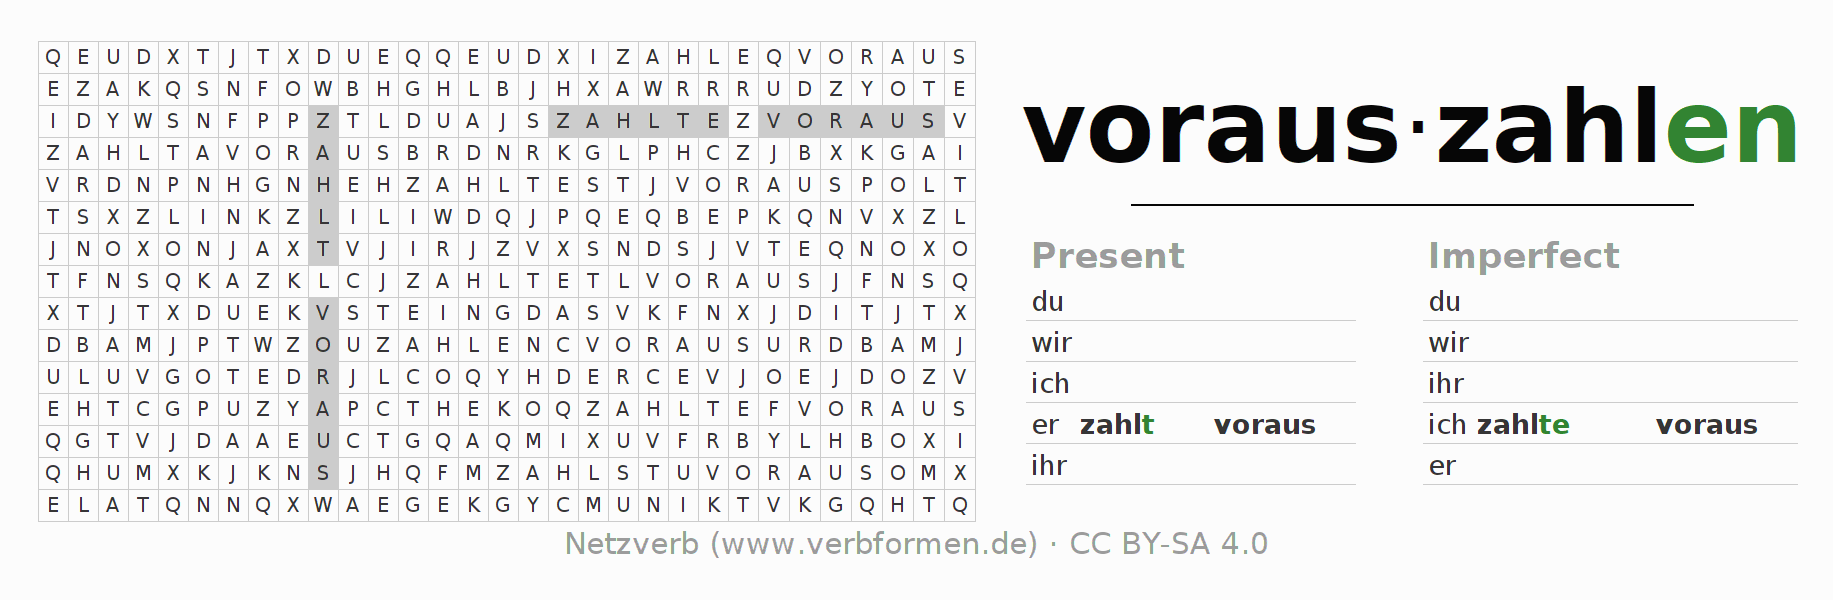 Word search puzzle for the conjugation of the verb vorauszahlen